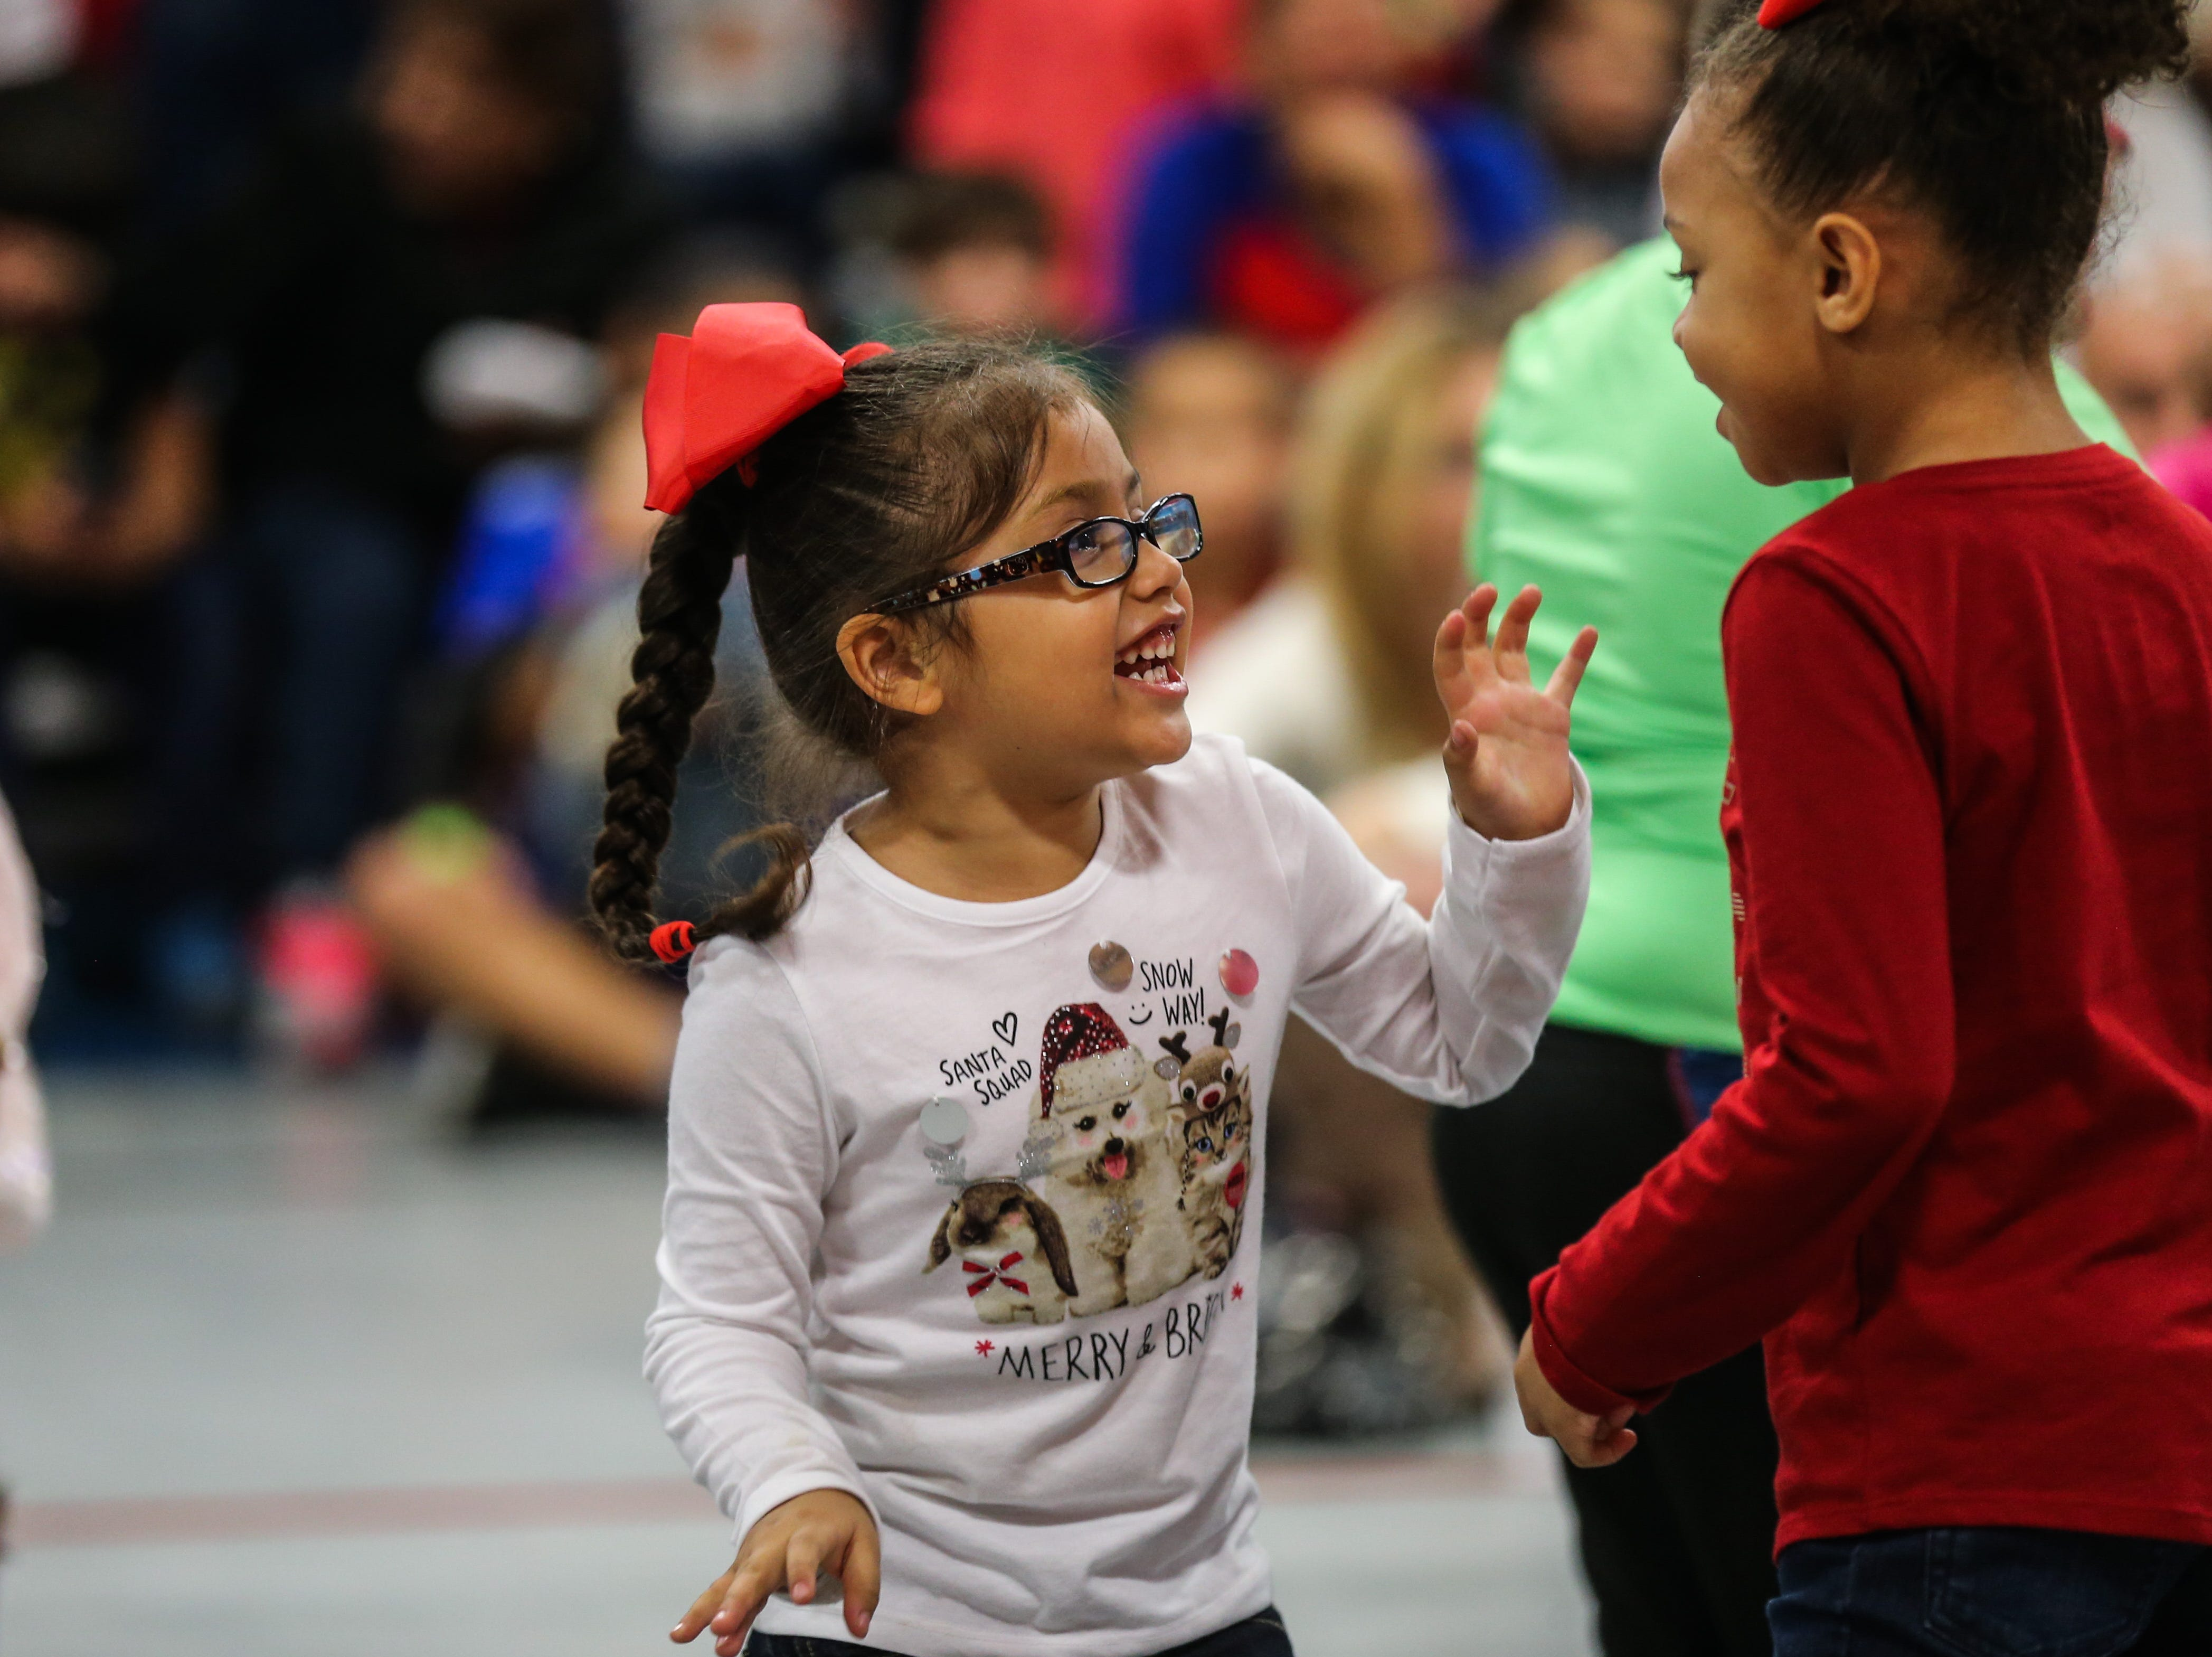 Kids dance during the In the Spirit of Christmas party Saturday, Dec. 15, 2018, at the Southside Recreation Center.